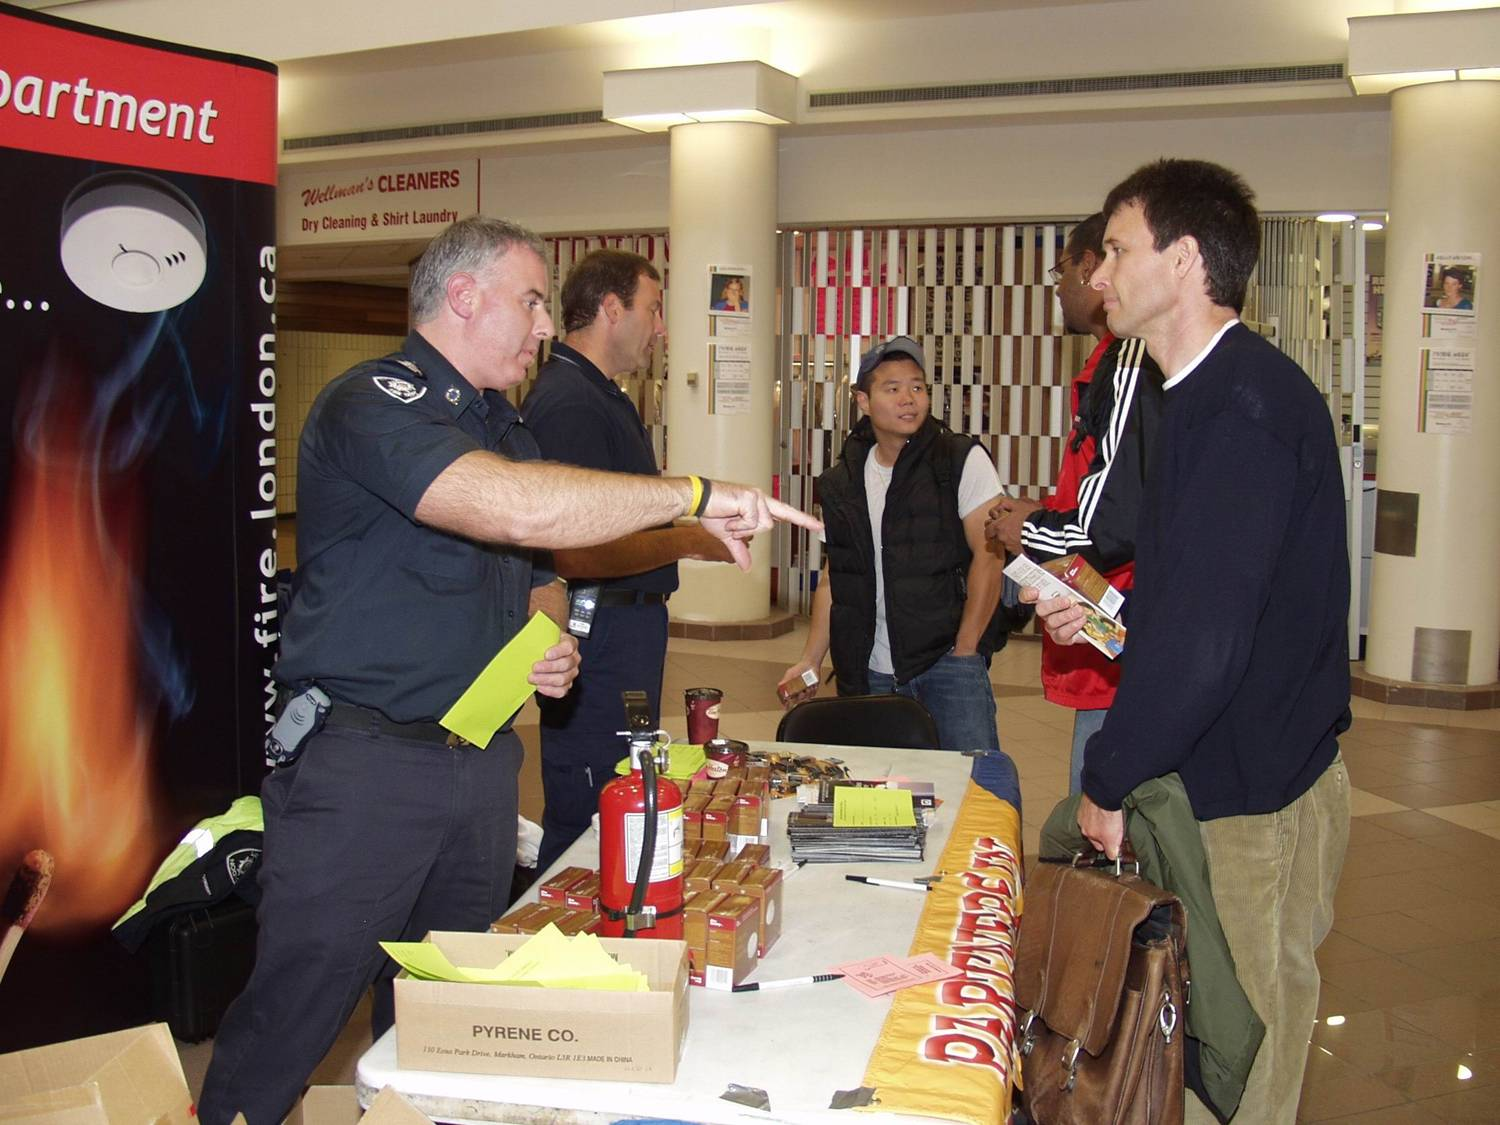 Fire Prevention officer explaining fire safety to citizens at a public display.